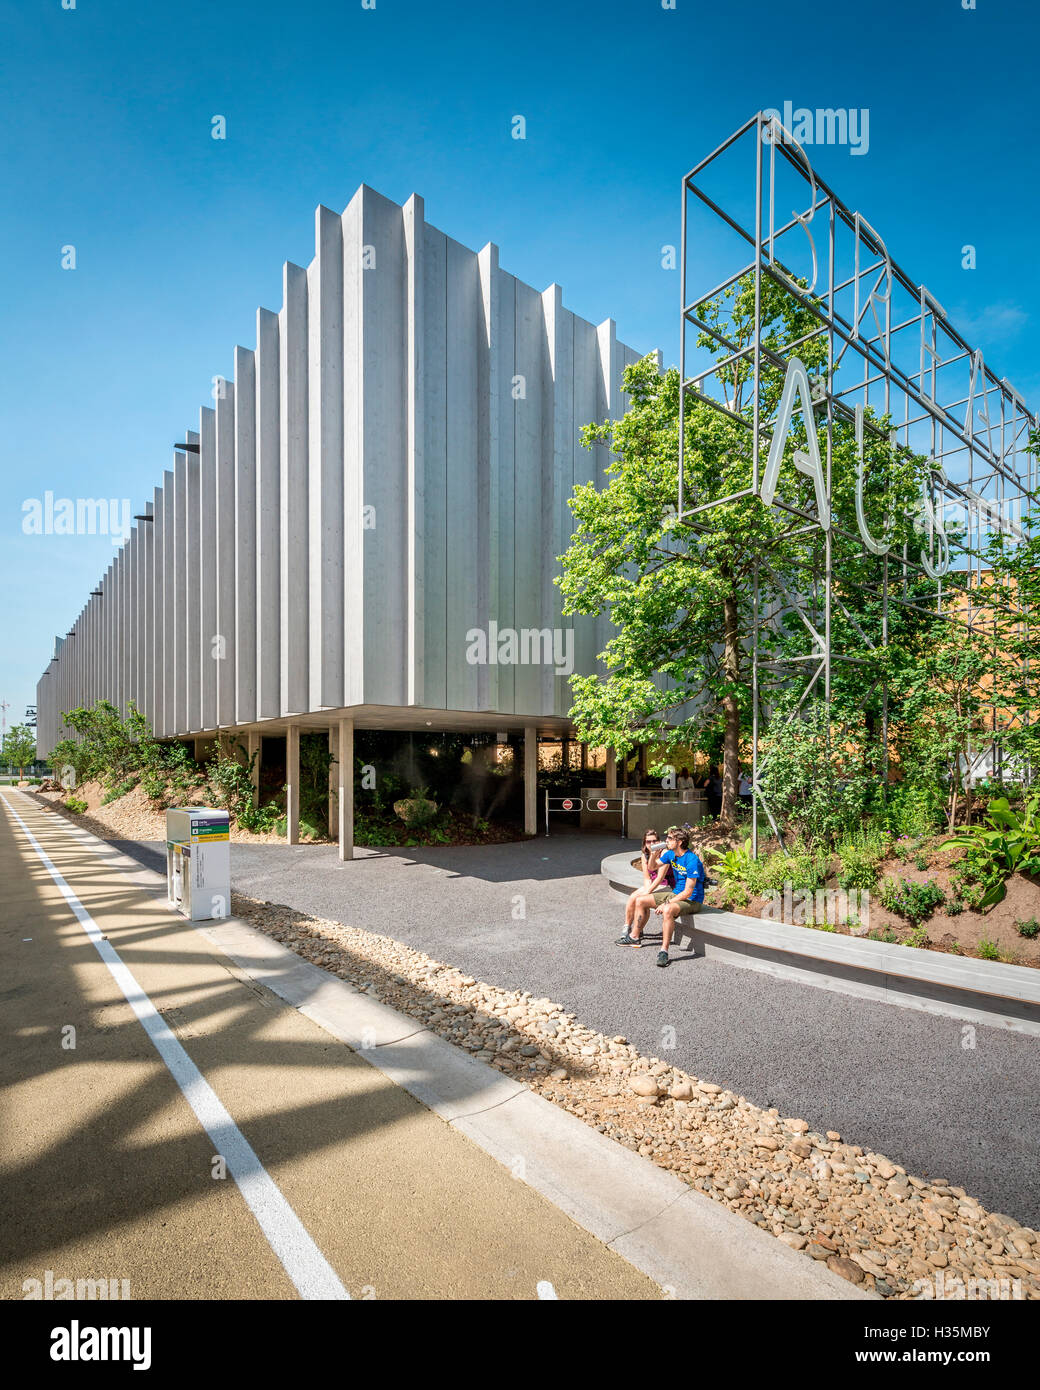 View of the Austria Pavilion at the Expo 2015 Milano Italy. - Stock Image